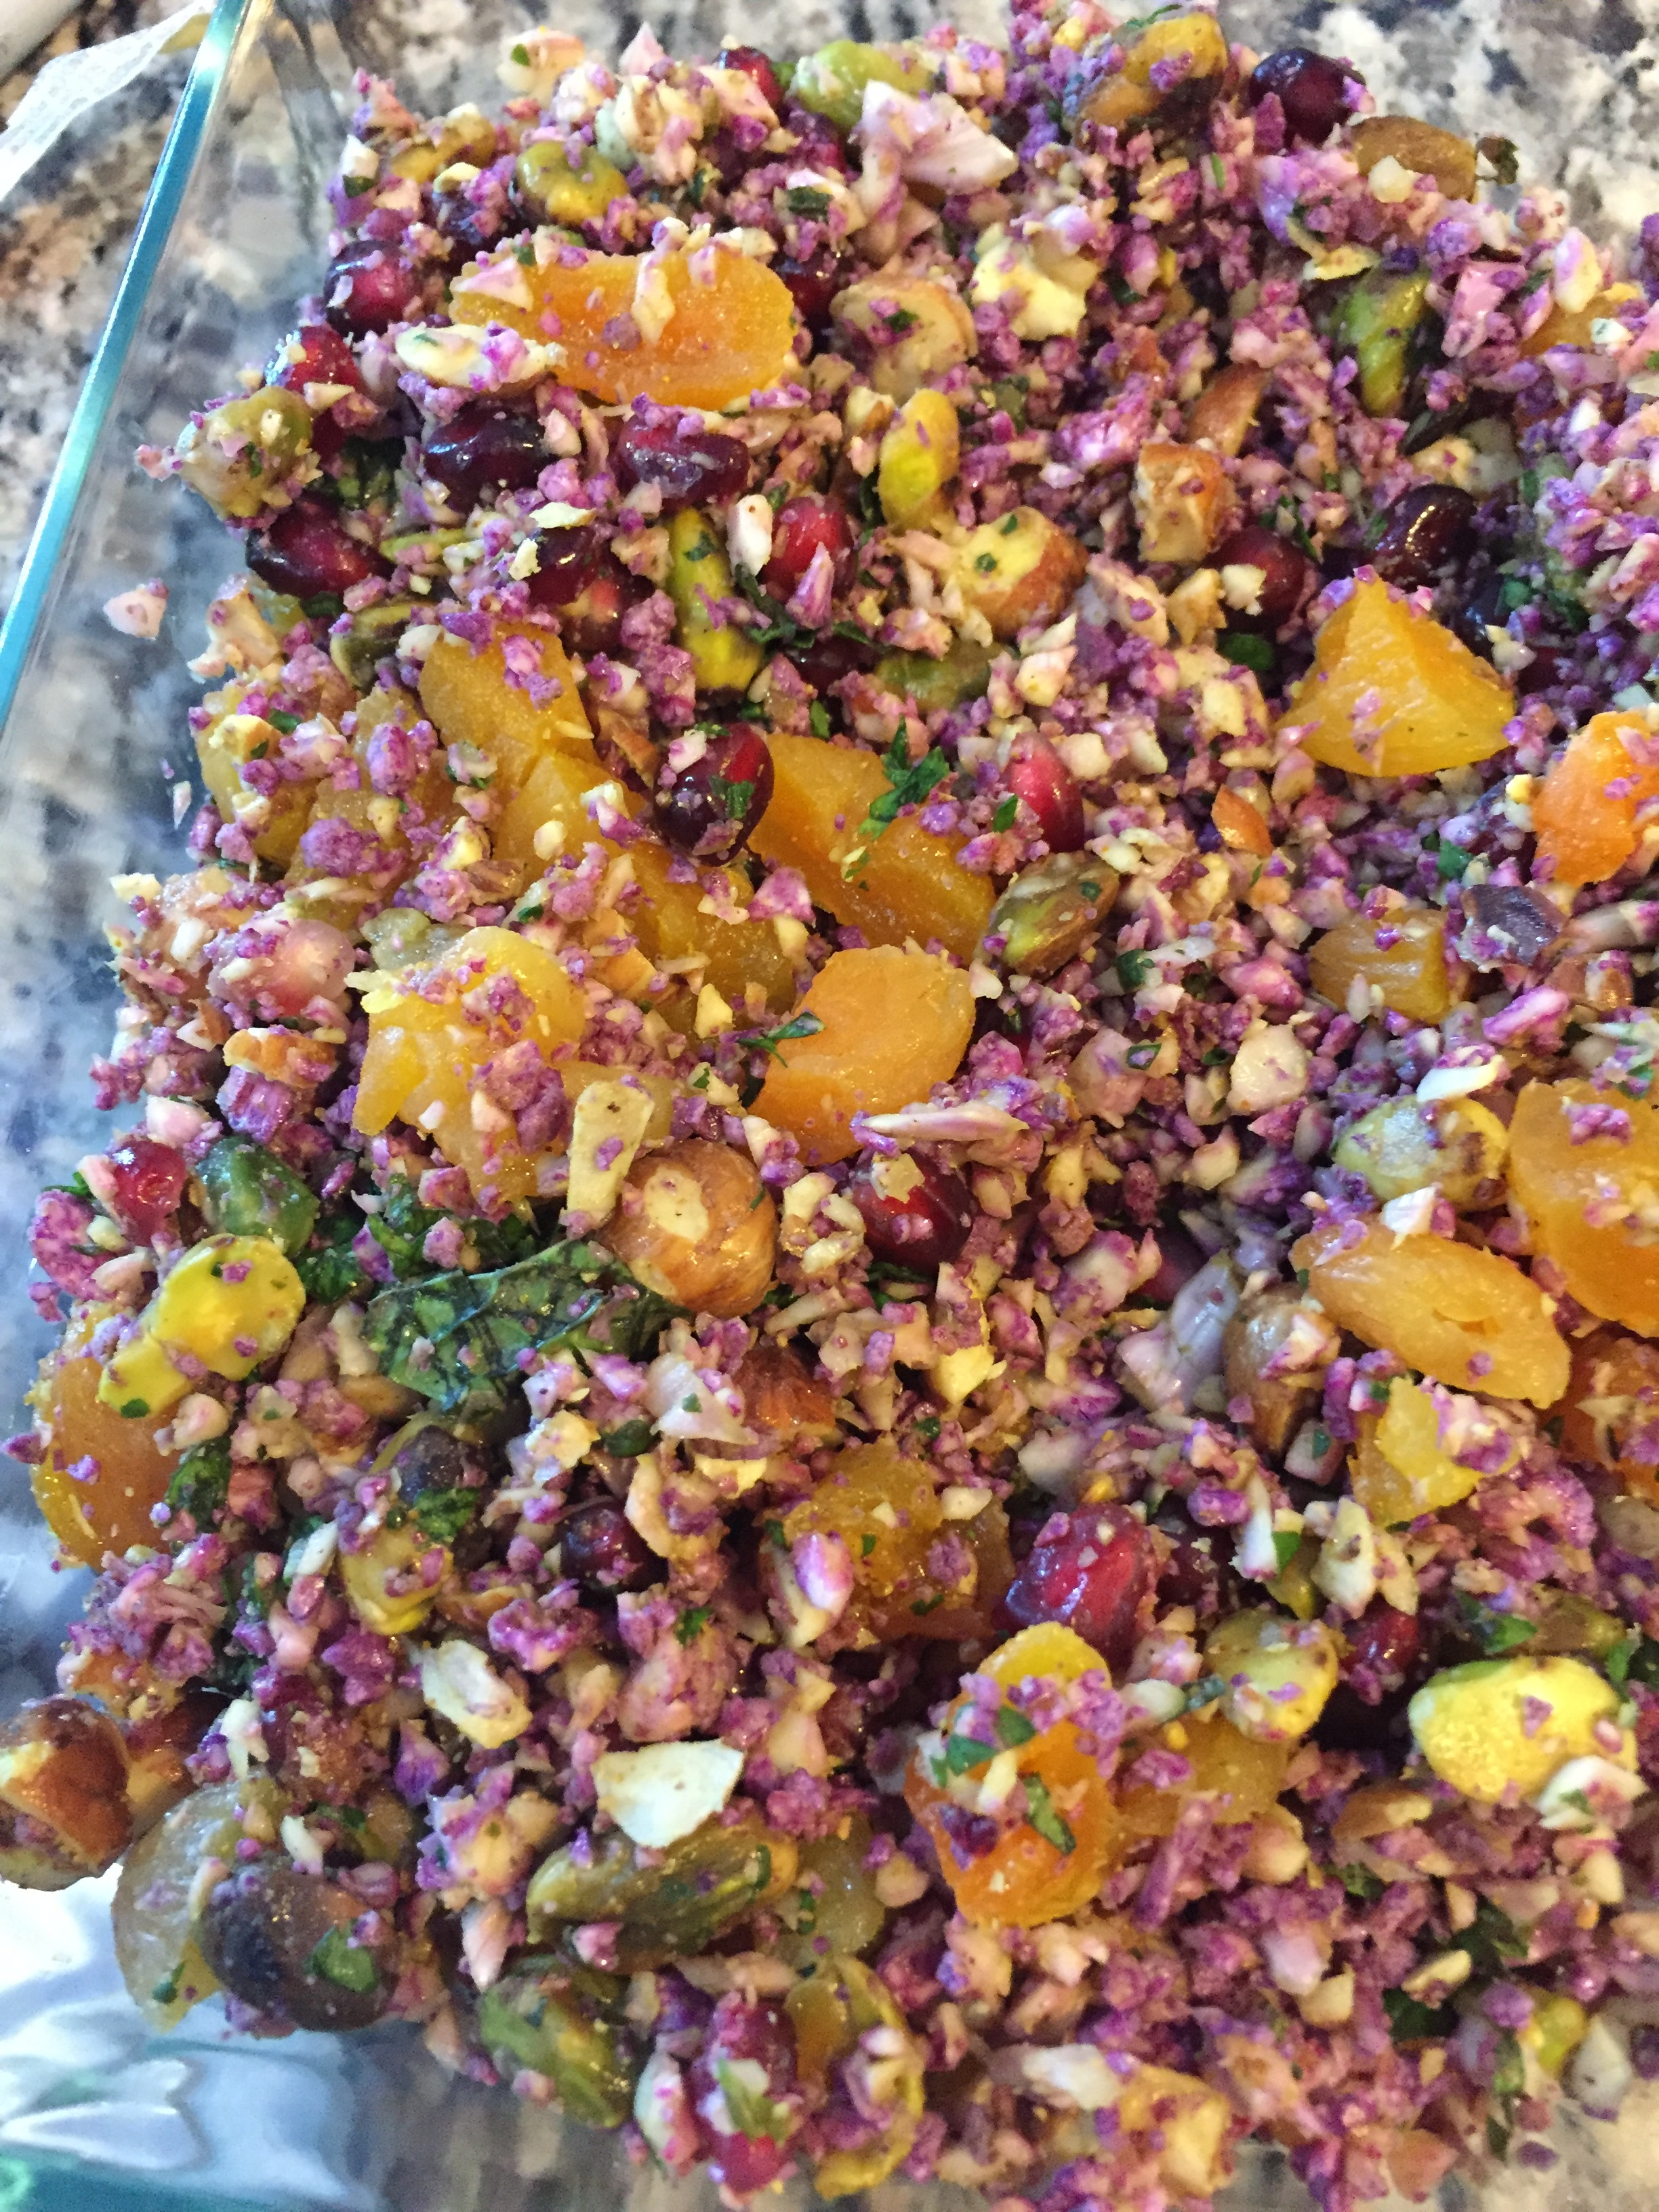 Vegan Fruity Cauliflower Crunch Salad